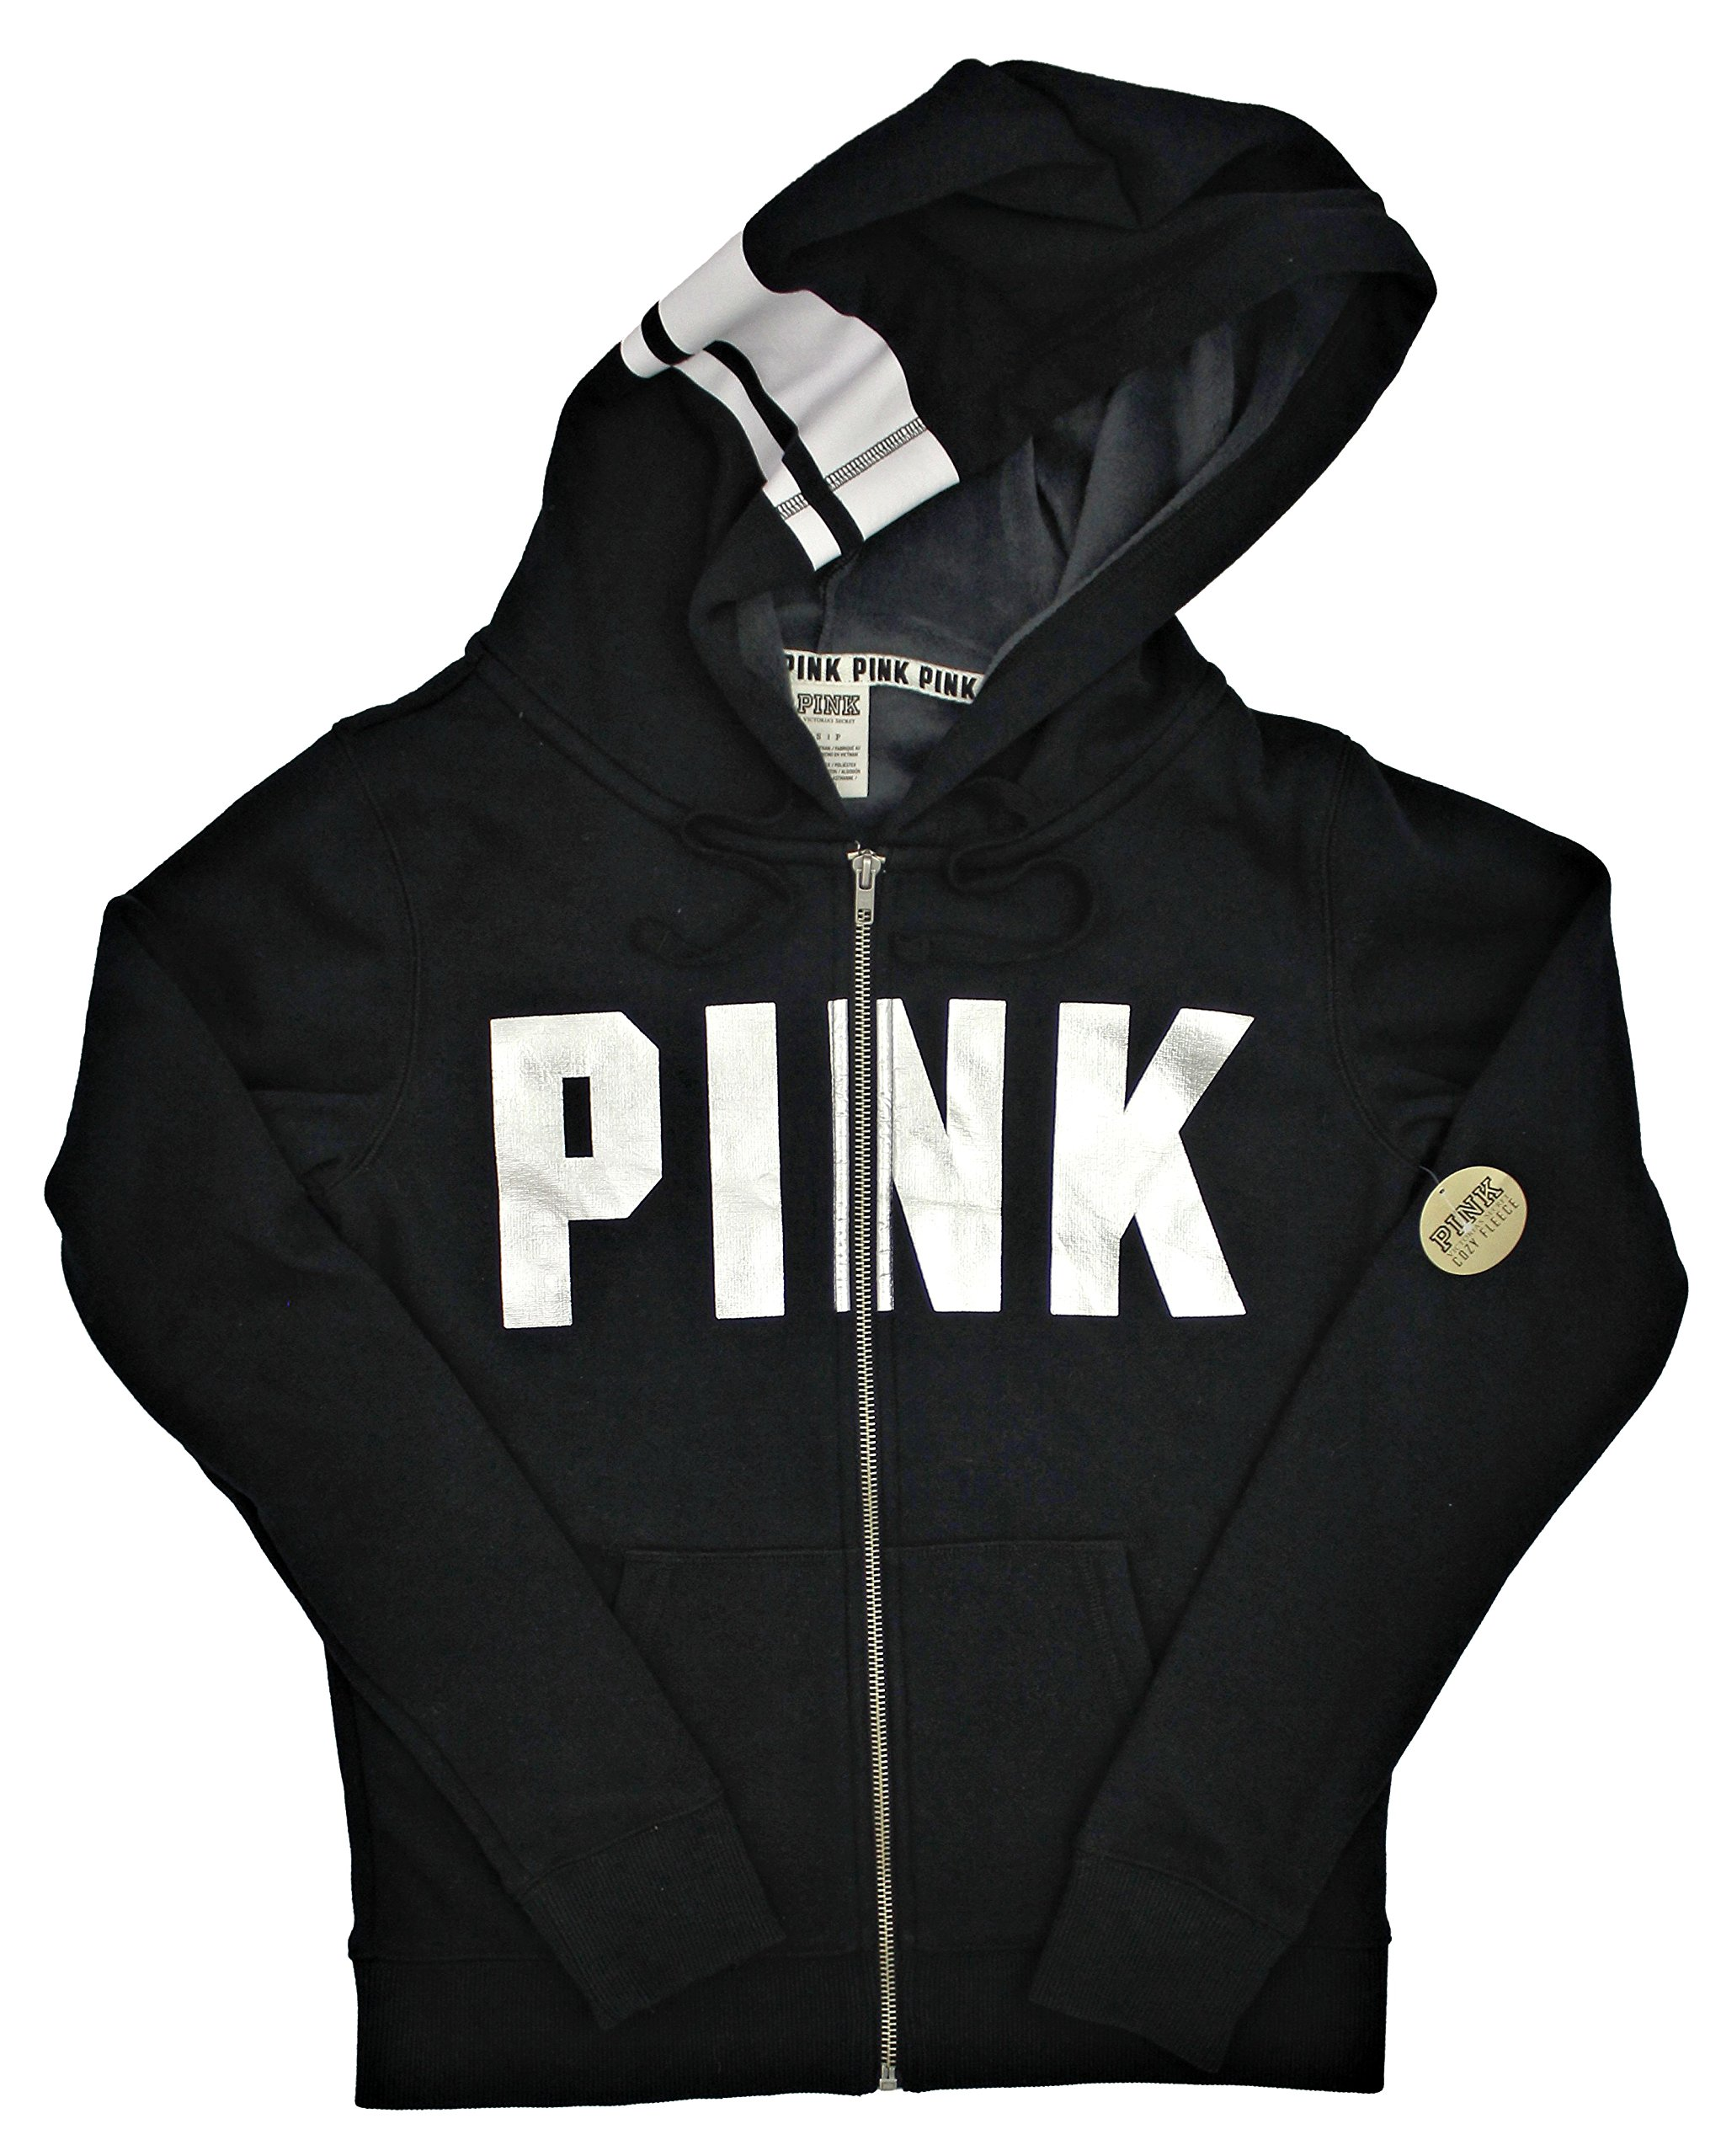 Victoria's Secret Pink Cozy Fleece-Lined Perfect Full Zip Hoodie, Black/Silver Logo, Medium